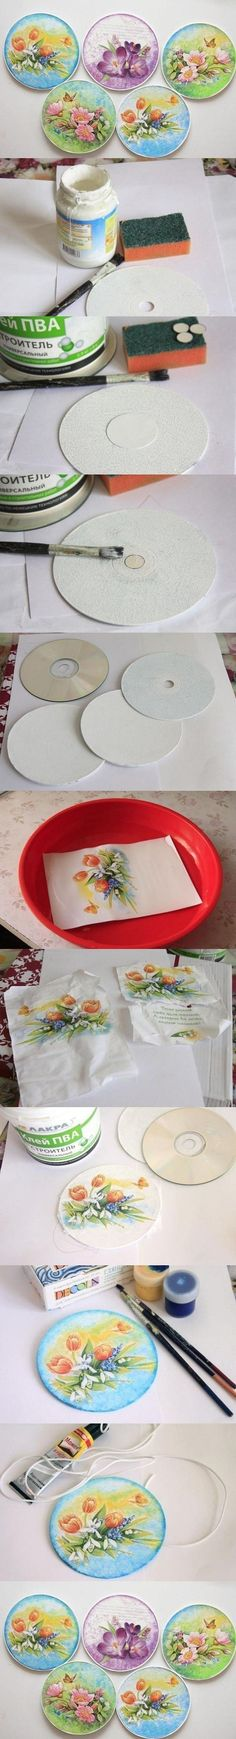 Nice Project Using Old CDs | IKEA Decoration